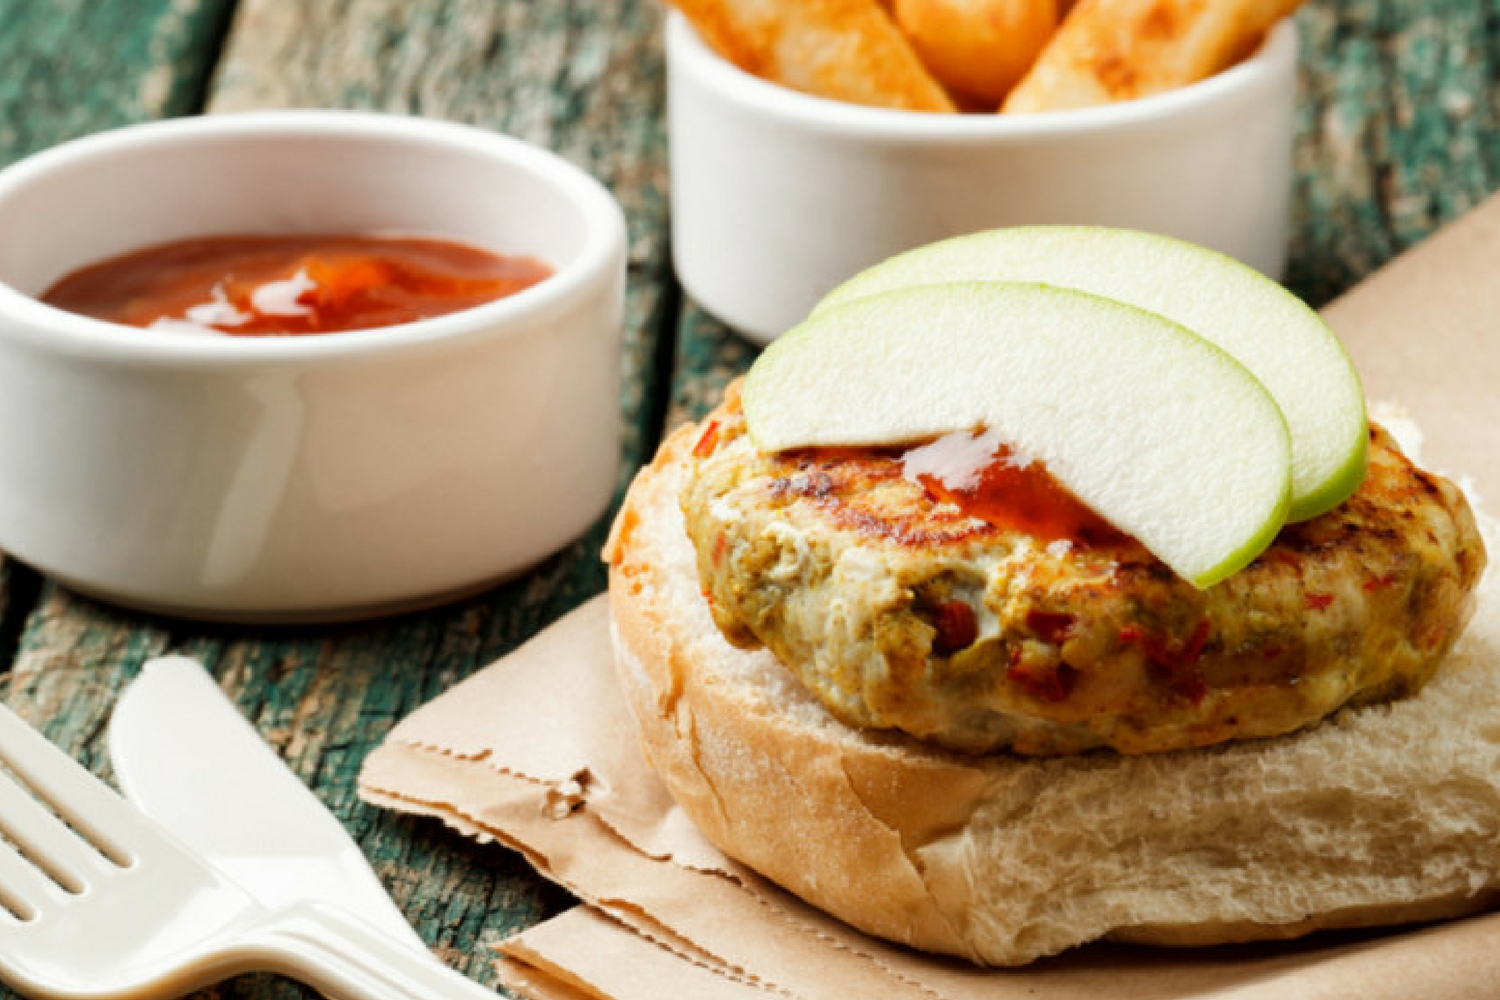 Turkey Apple Burgers on a plate with sliced green apples.